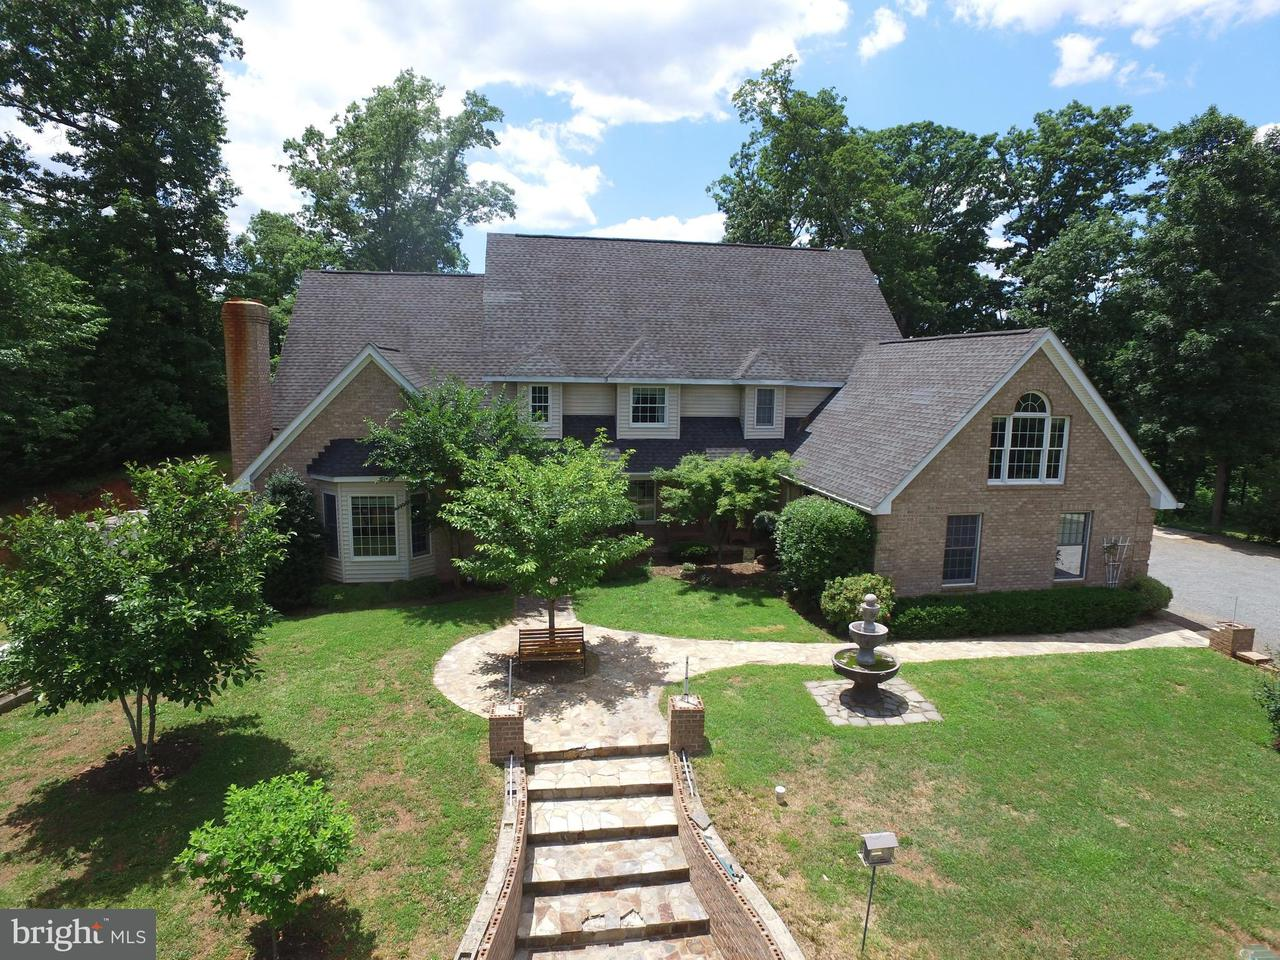 Single Family Home for Sale at 10952 Mountain Run Lake Road 10952 Mountain Run Lake Road Culpeper, Virginia 22701 United States